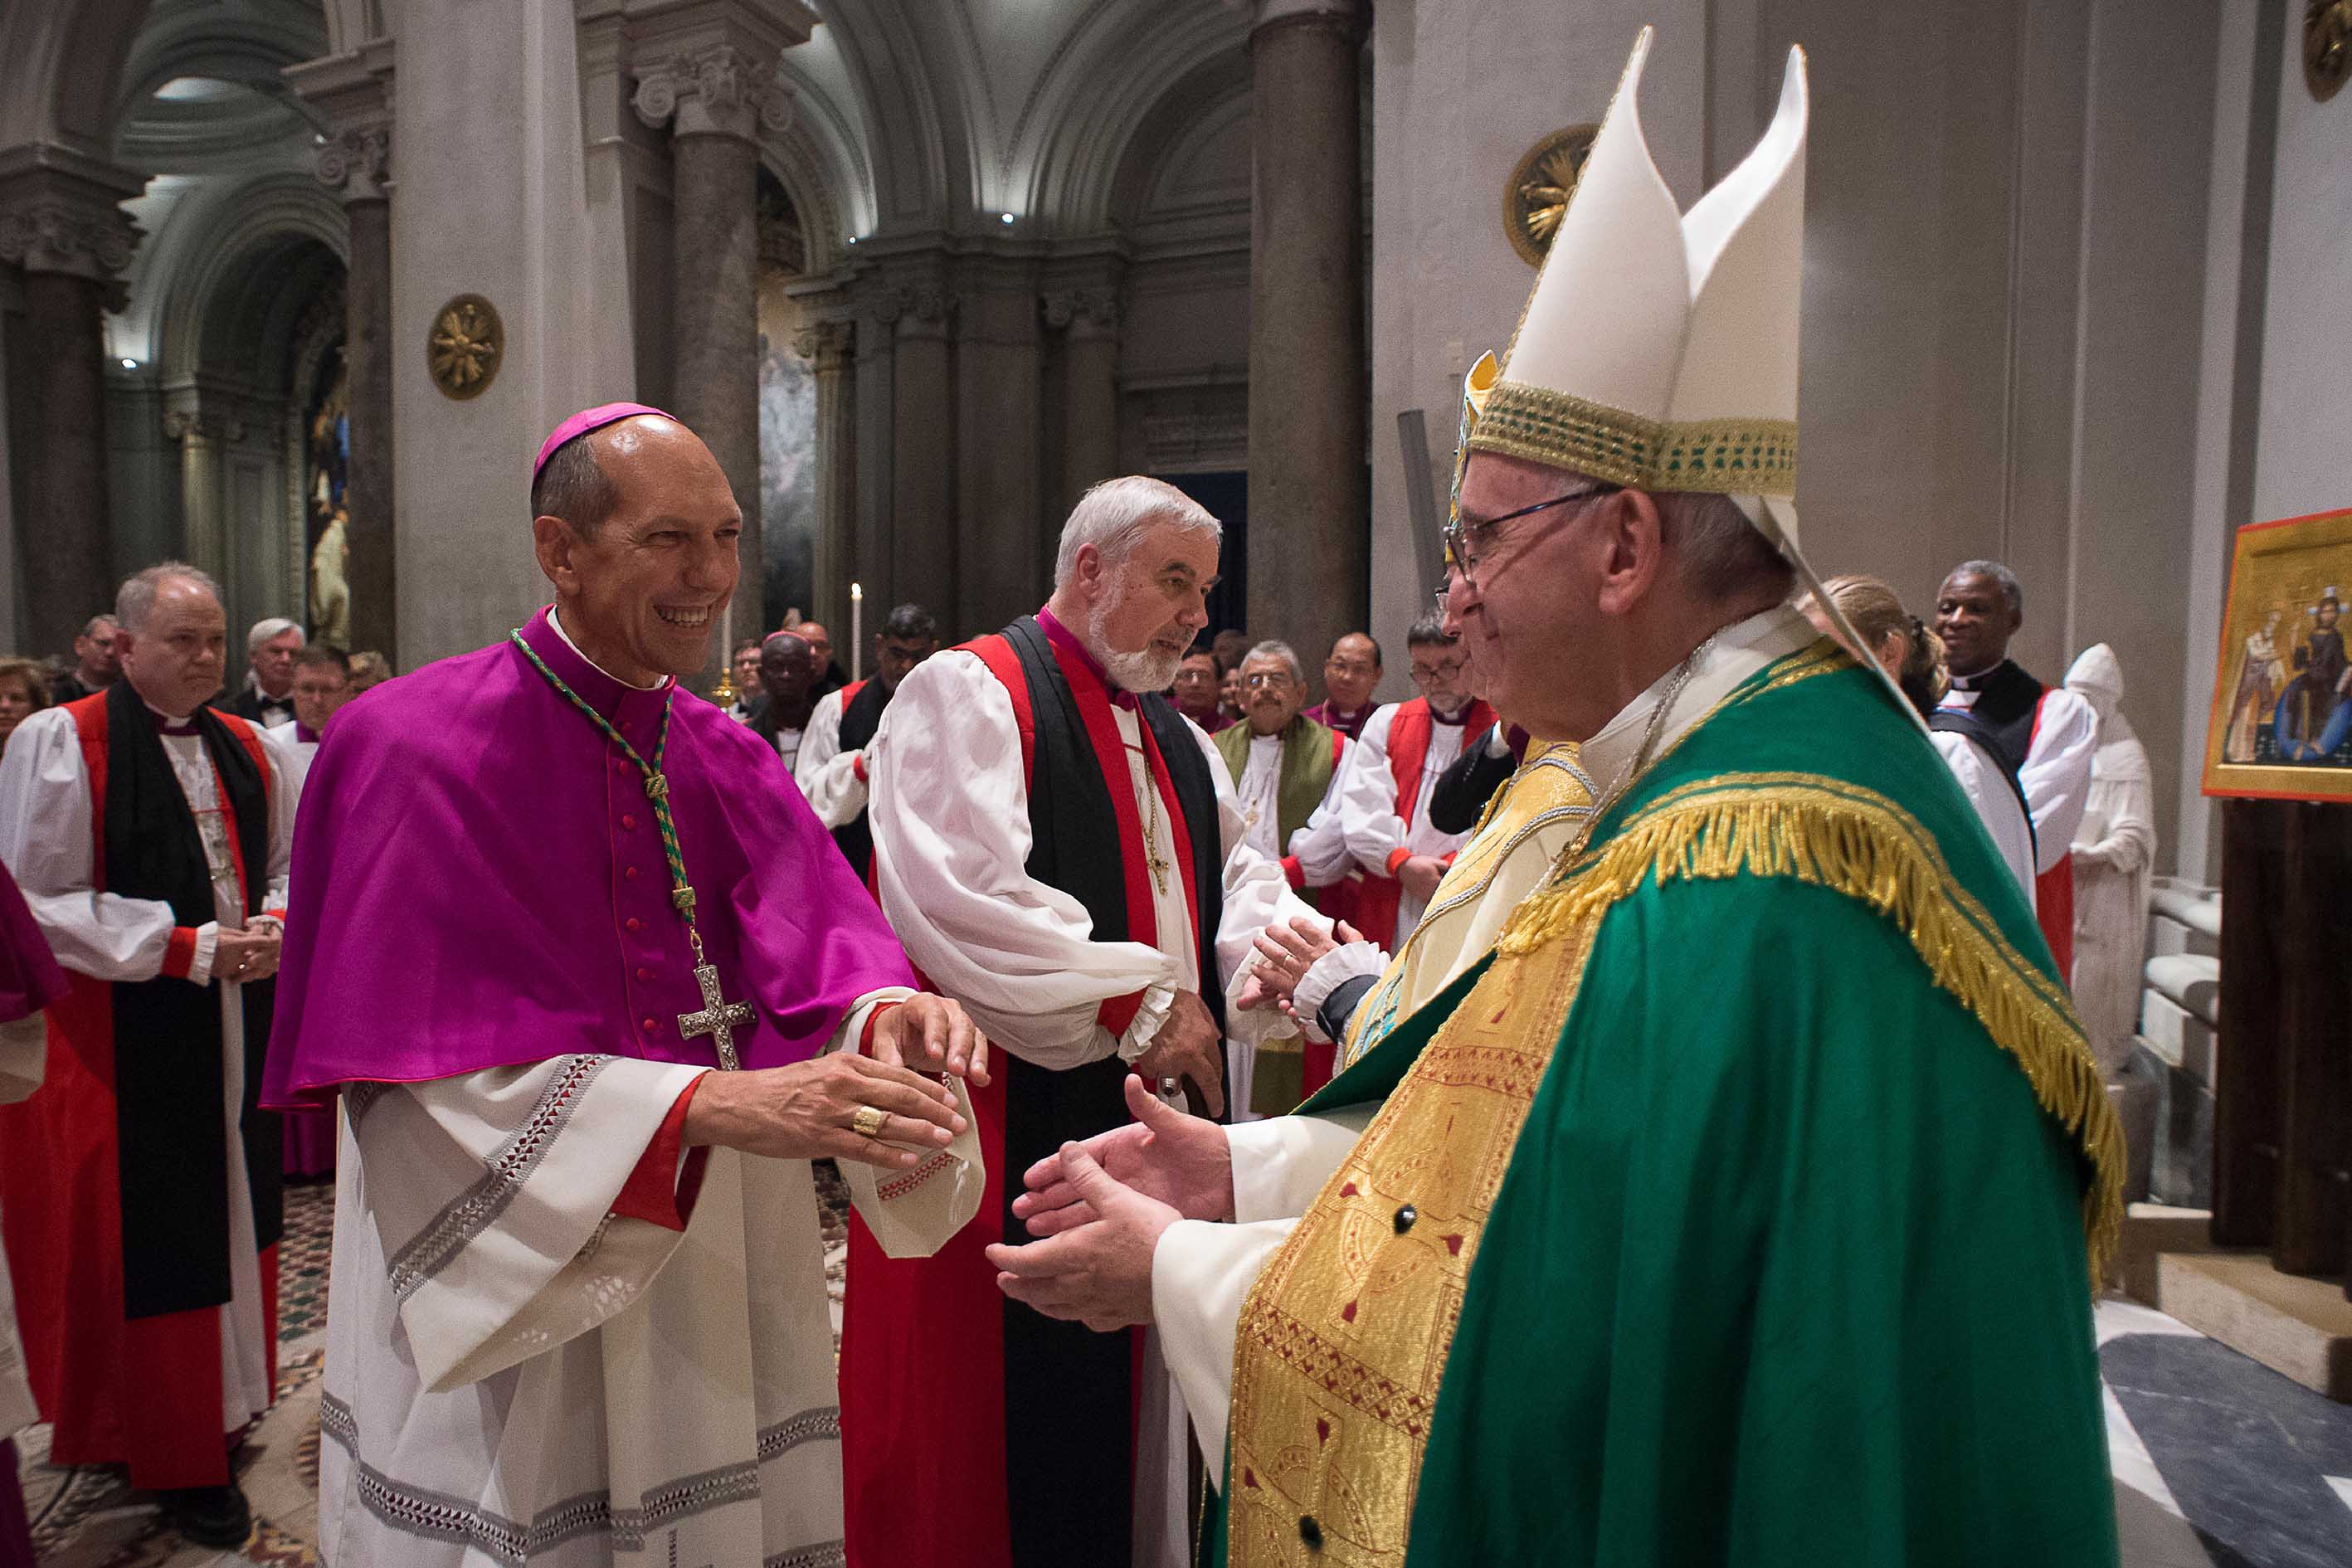 Archbishop Donald Bolen of Regina was commissioned by Pope Francis and Archbishop Justin Welby together with 19 pairs of Anglican and Roman Catholic bishops from around the world